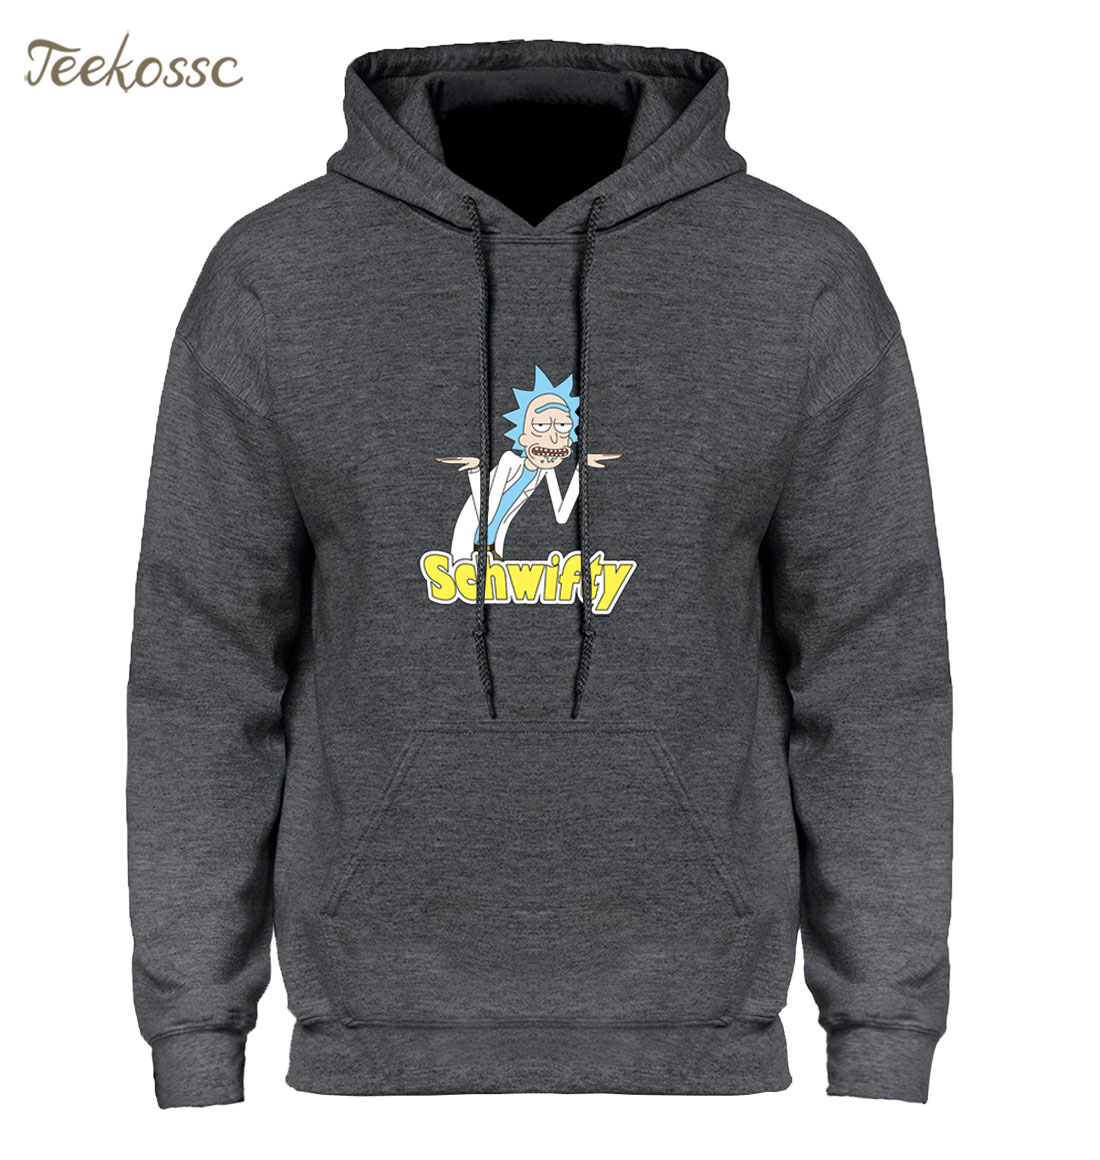 Schwifty Men Hoodie Rick And Morty Funny Homens Hoodies Sweatshirt Mens 2018 New Winter Autumn Hooded Casual Cartoon Rick Hoody